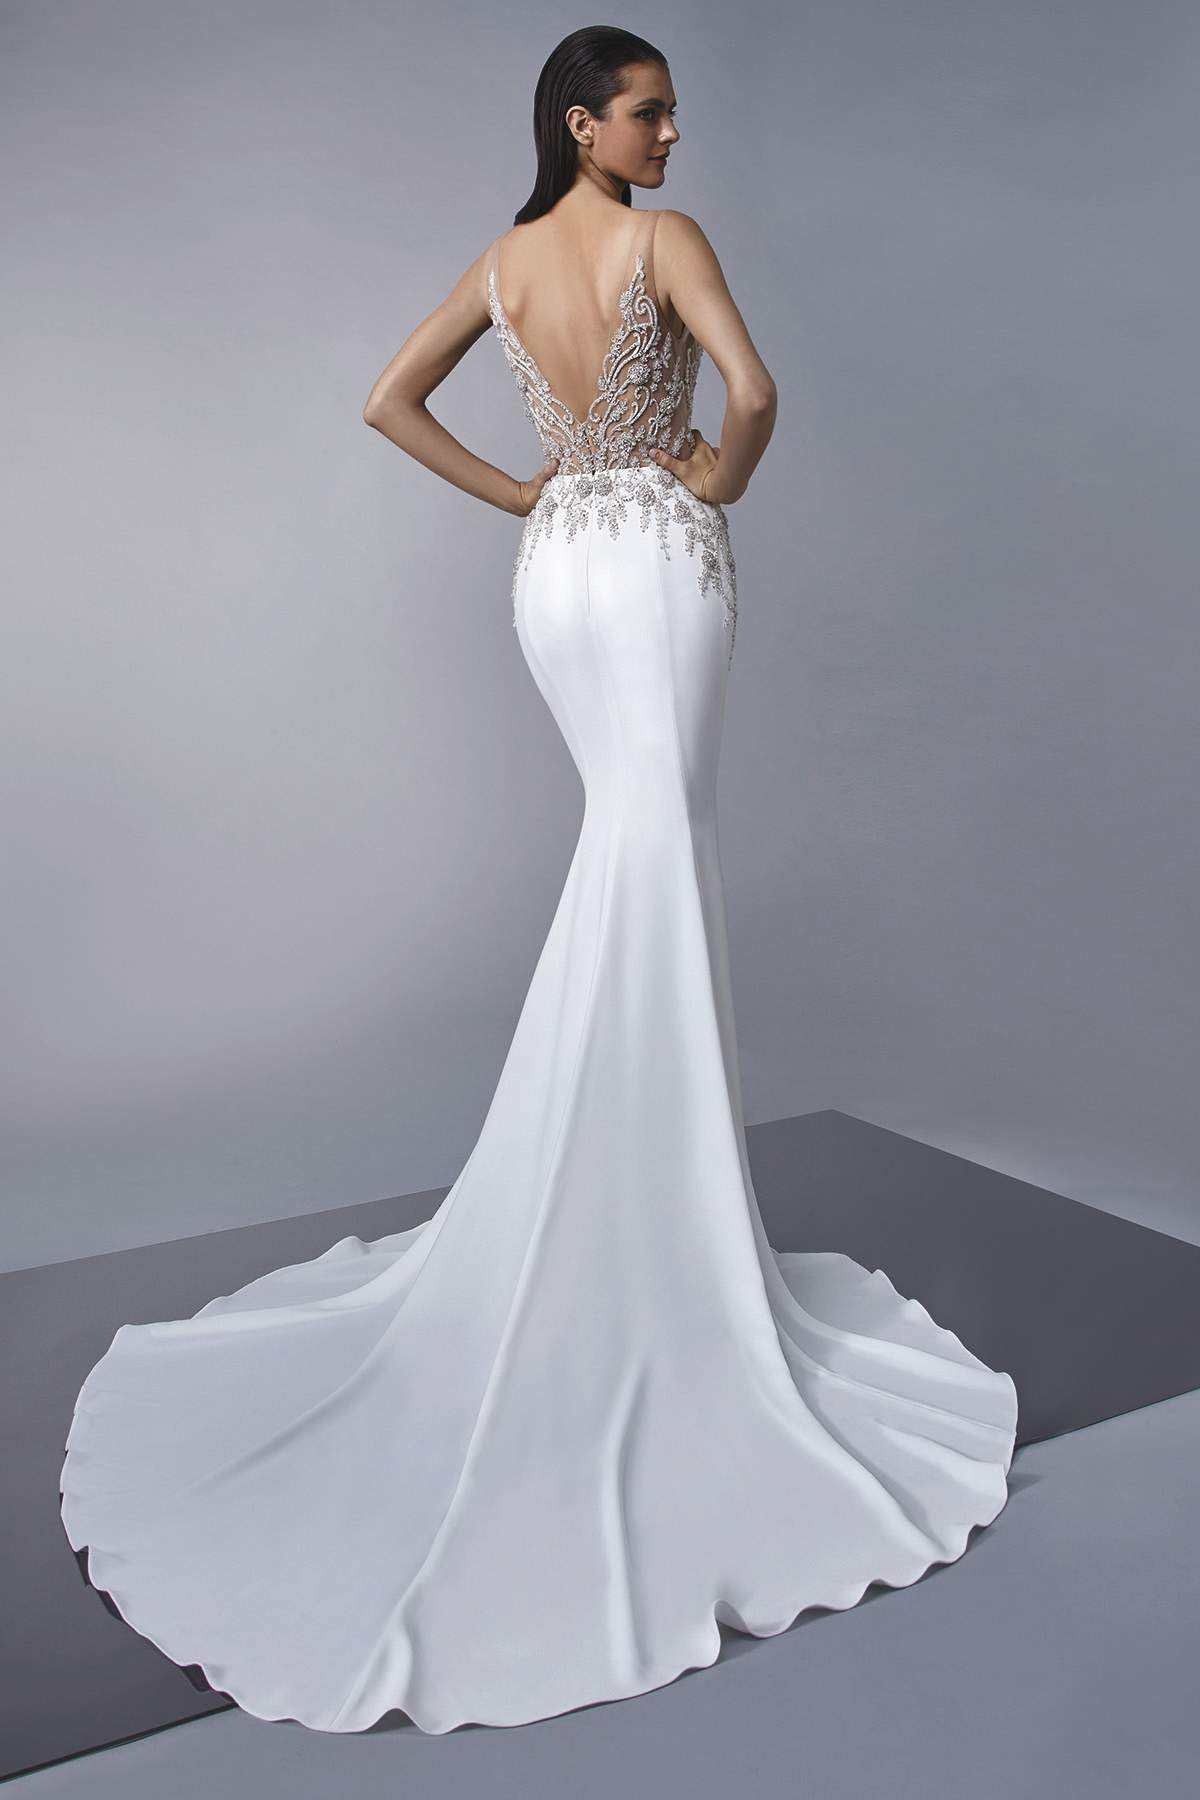 8d563634c734 Melinda by Enzoani - Find Your Dream Dress